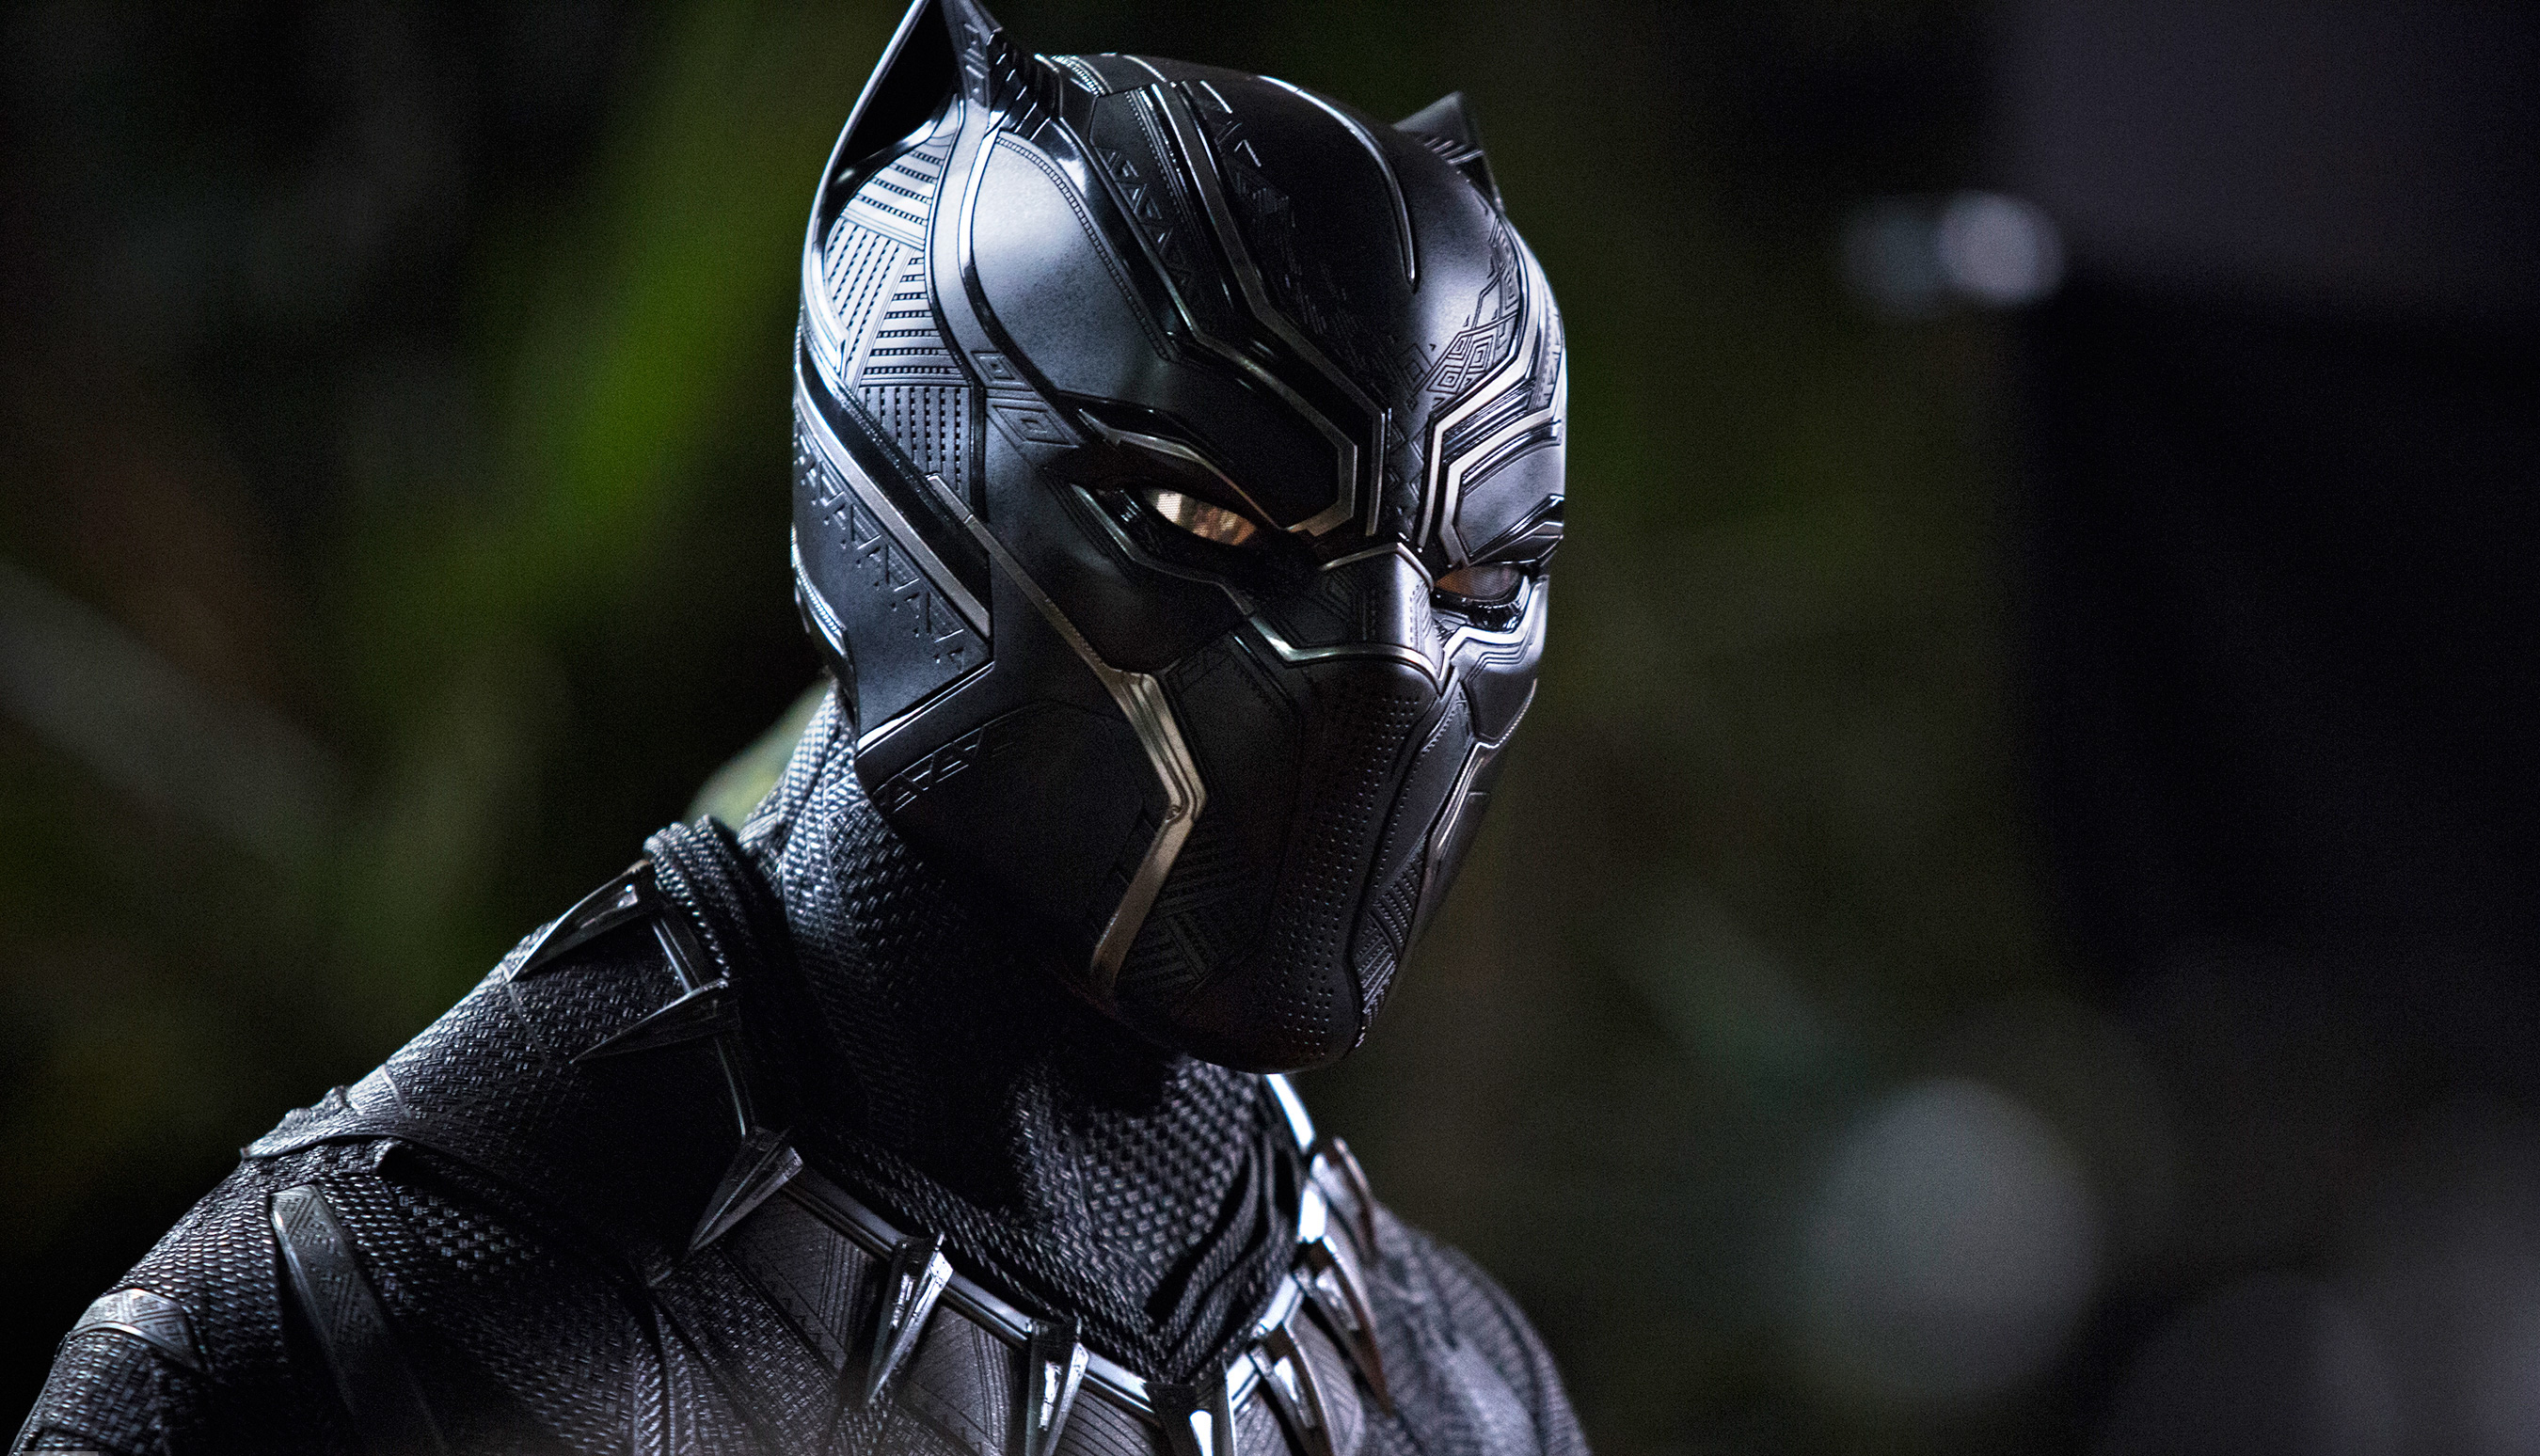 Black Panther 2 release date officially announced at D23